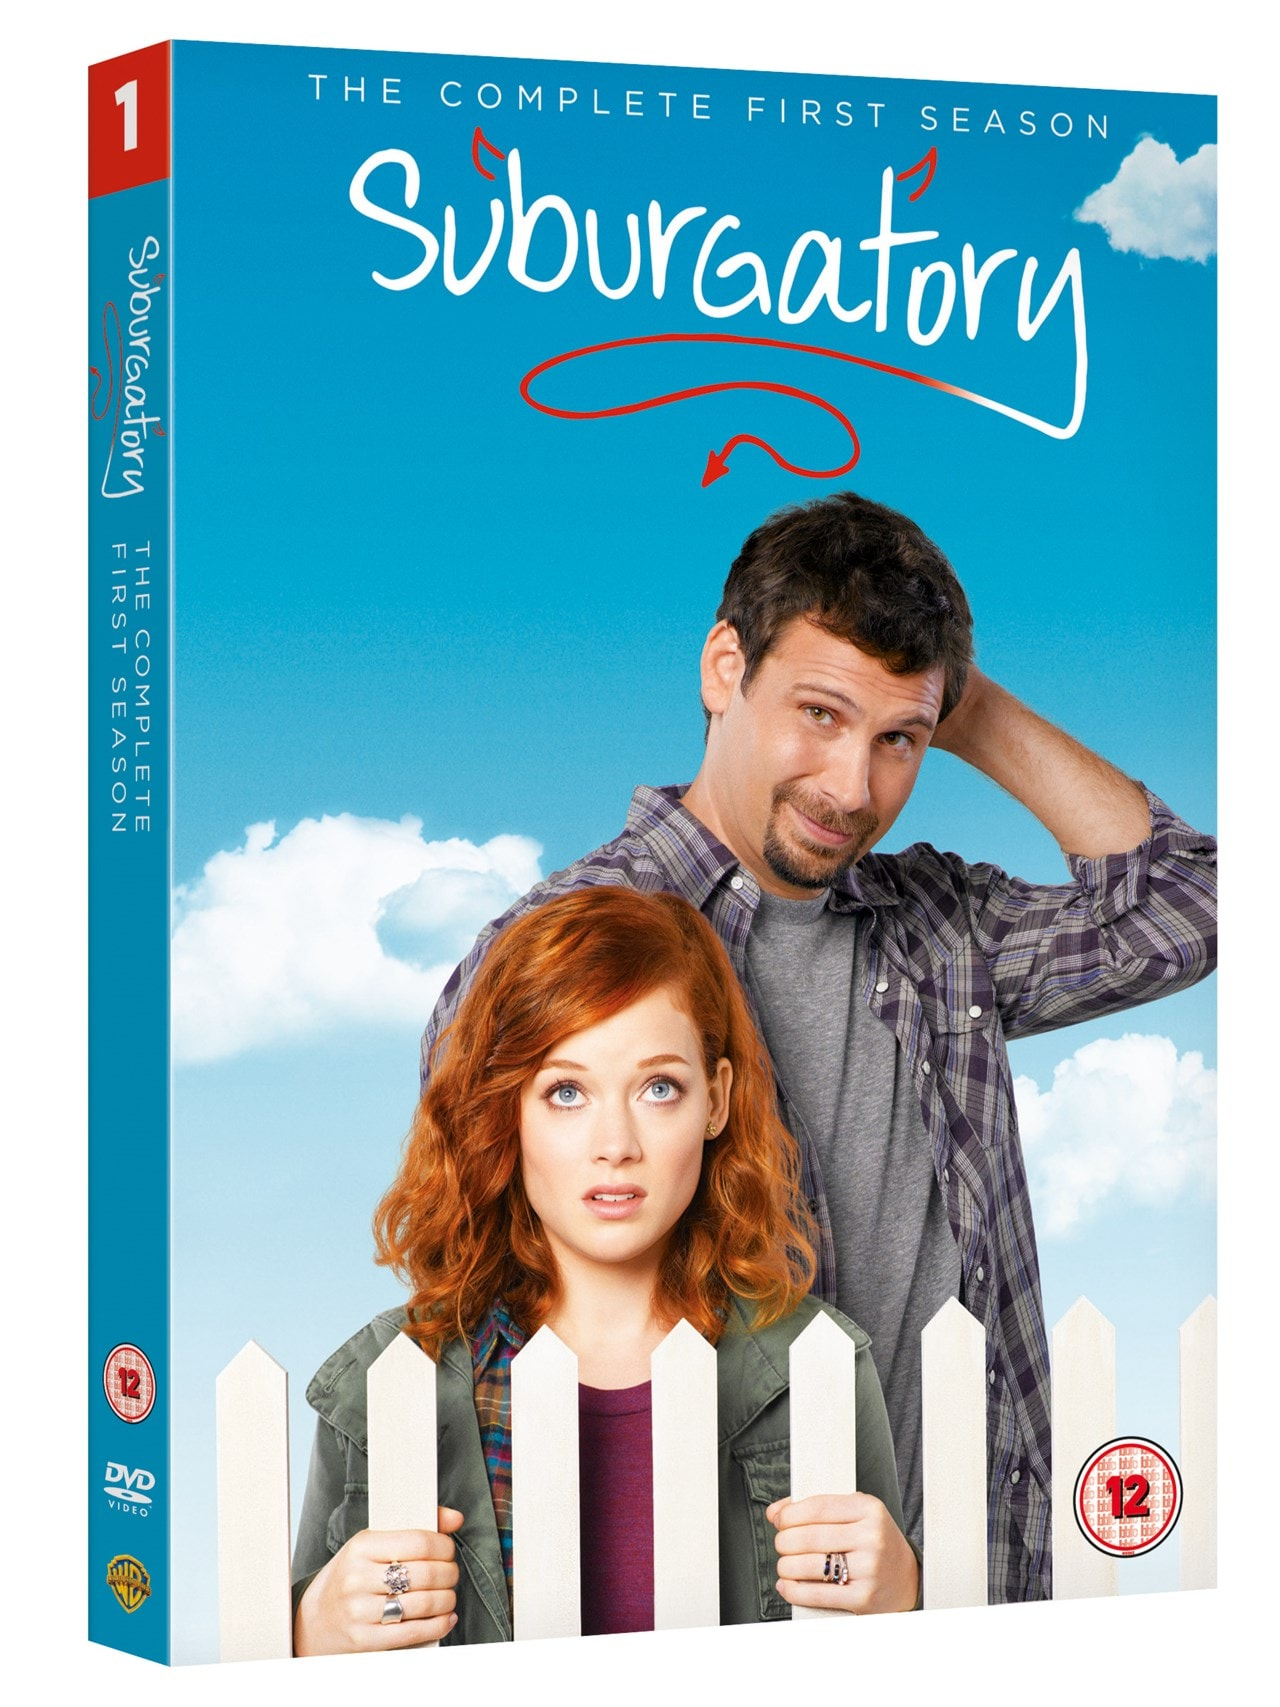 Suburgatory: The Complete First Season - 2